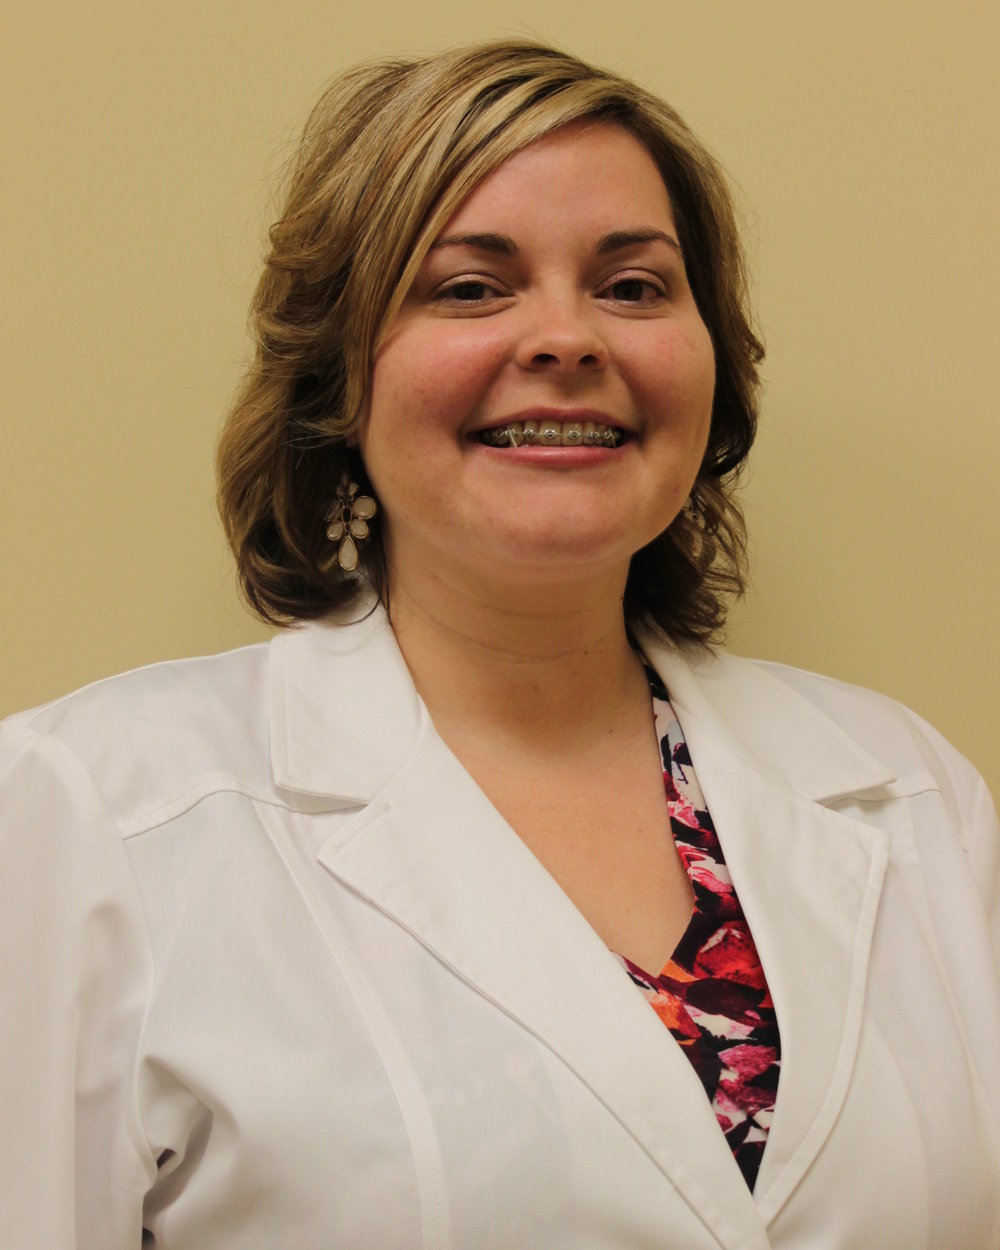 "Dr. Sarah Anderson Grabmiller, D.O. Assistant Program Director Dr. Grabmiller is a Meridian native. An alumna of Millsaps College, she graduating with a B.S. in Biology before attending PCOM Atlanta for medical school. She completed her Family Medicine Residency at North Mississippi Medical Center in Tupelo. She spends her free time with her husband and daughter.  Her life verse is Hebrews 13.2, ""Do not neglect to show hospitality to strangers, for by doing so some people have entertained angels without knowing it.""  She strives to apply this verse to all aspects of her life."